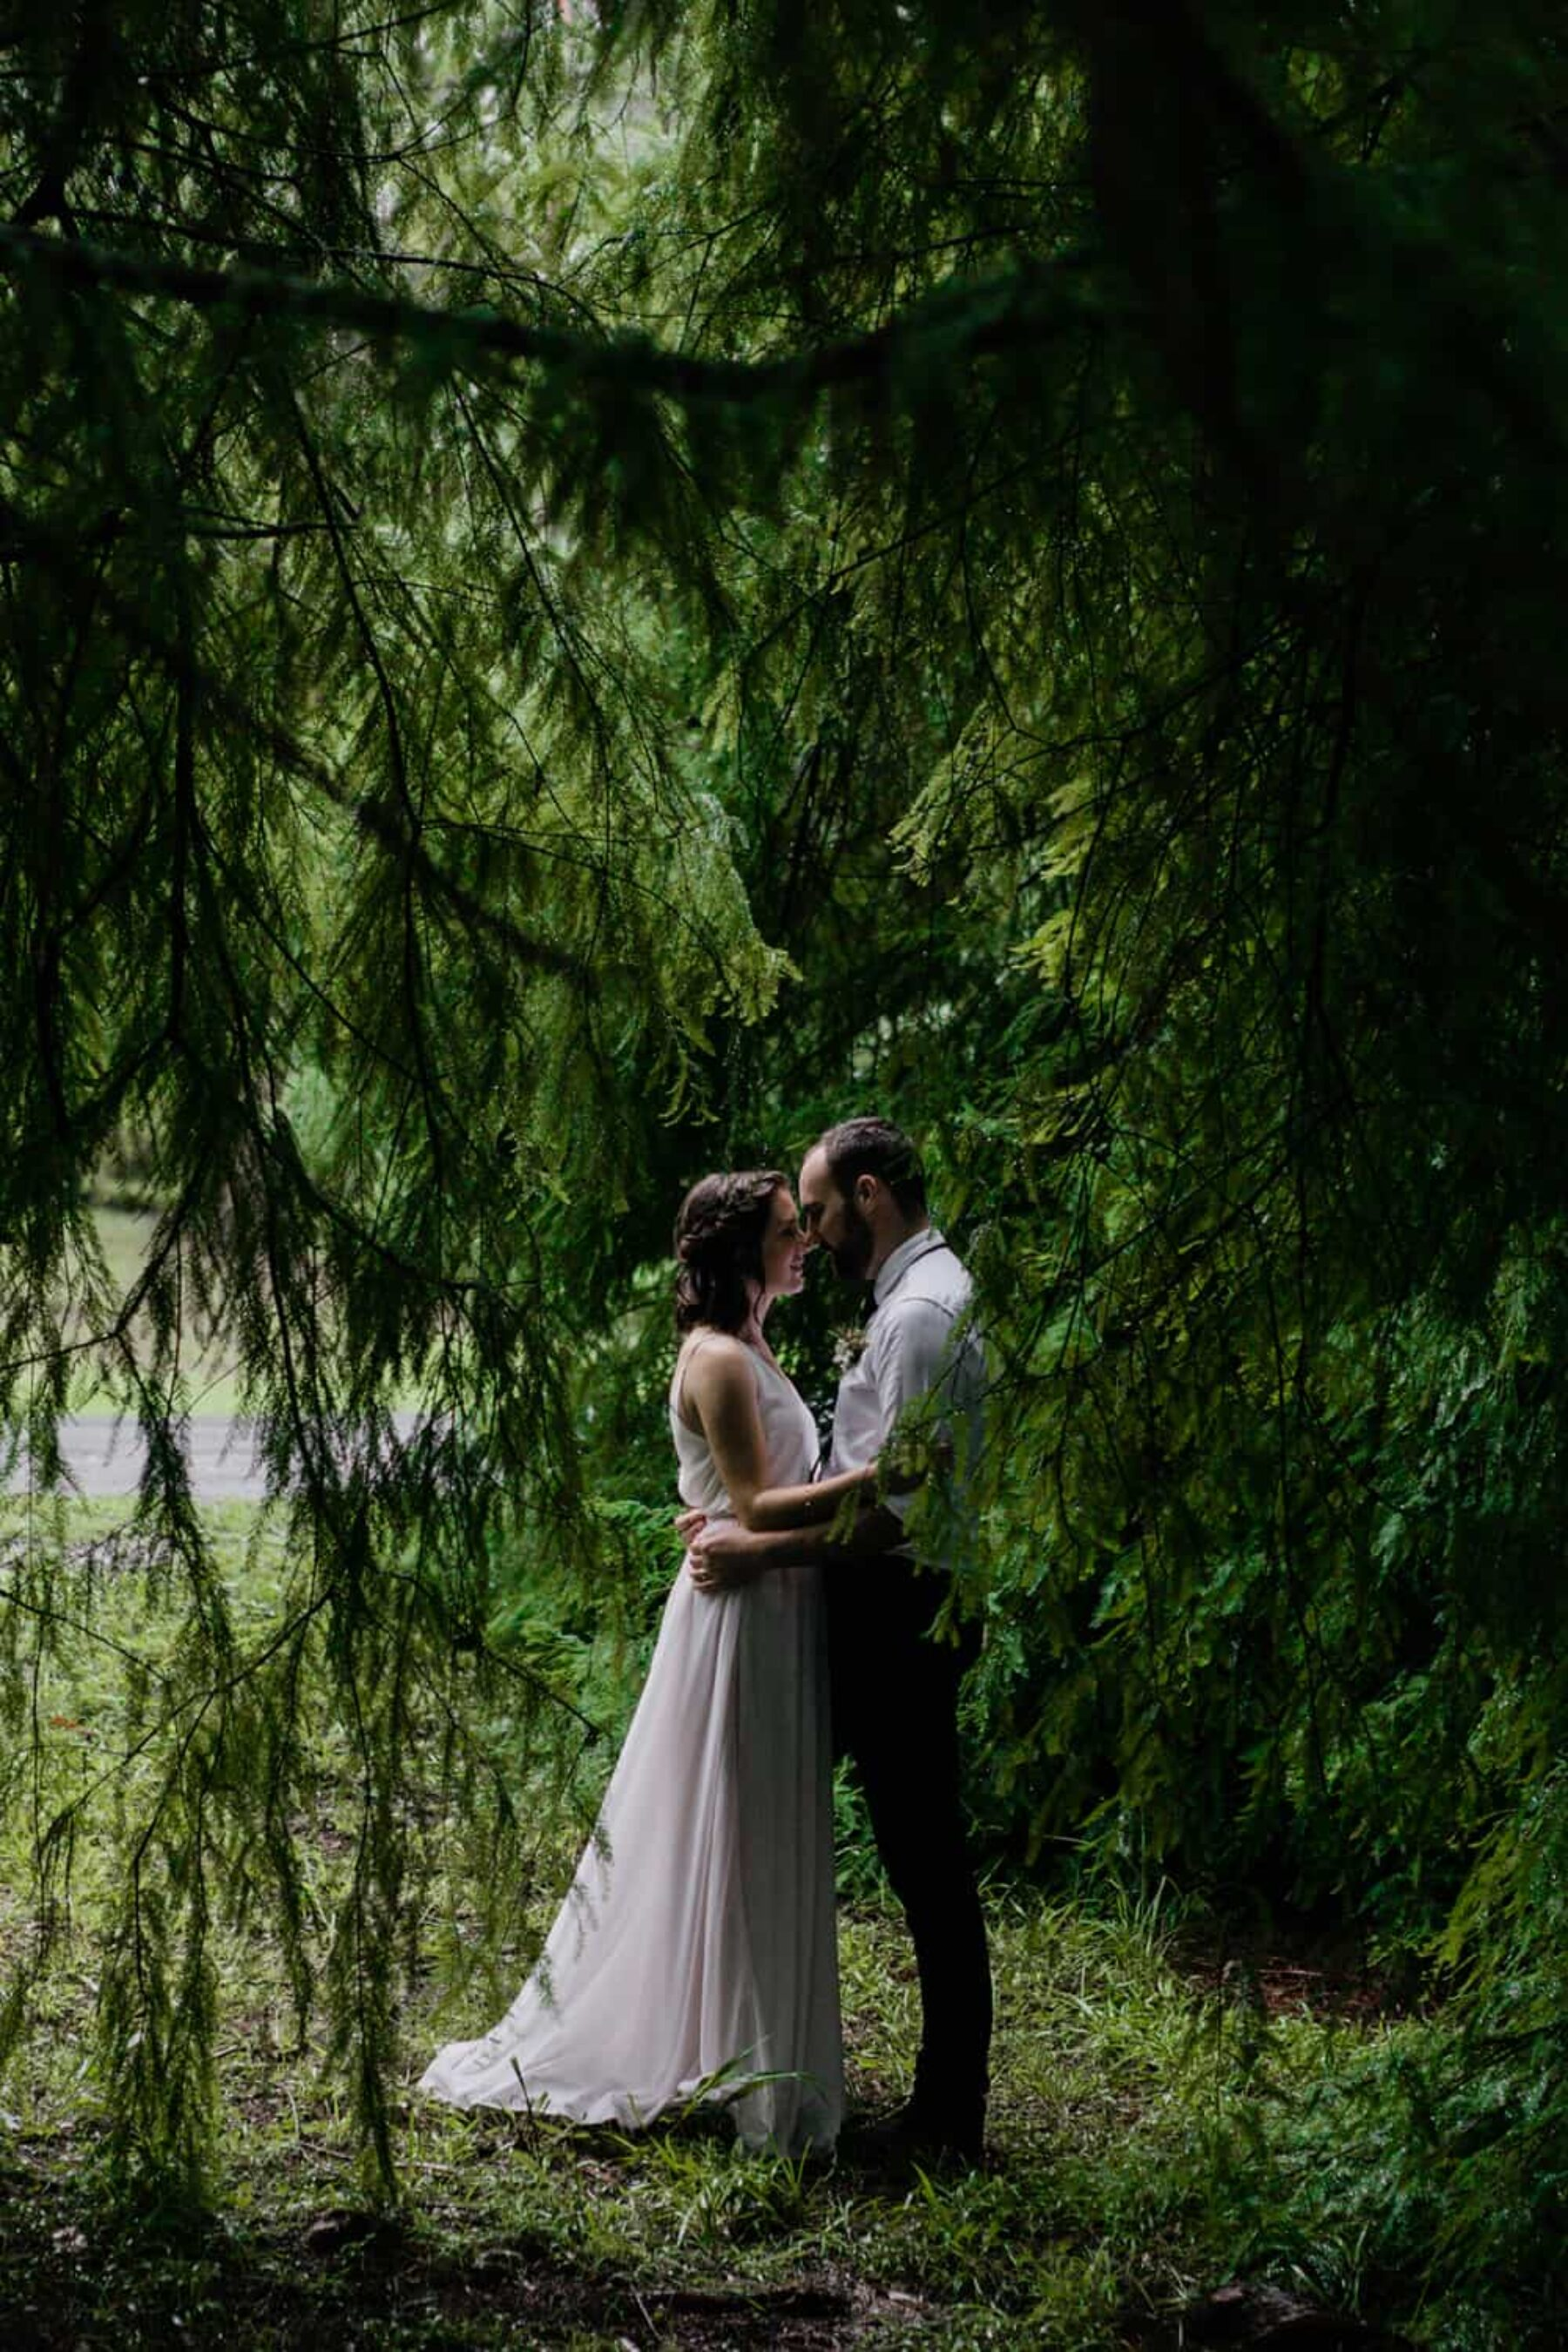 Tamborine Mountain elopement - photography by Aaron Shum